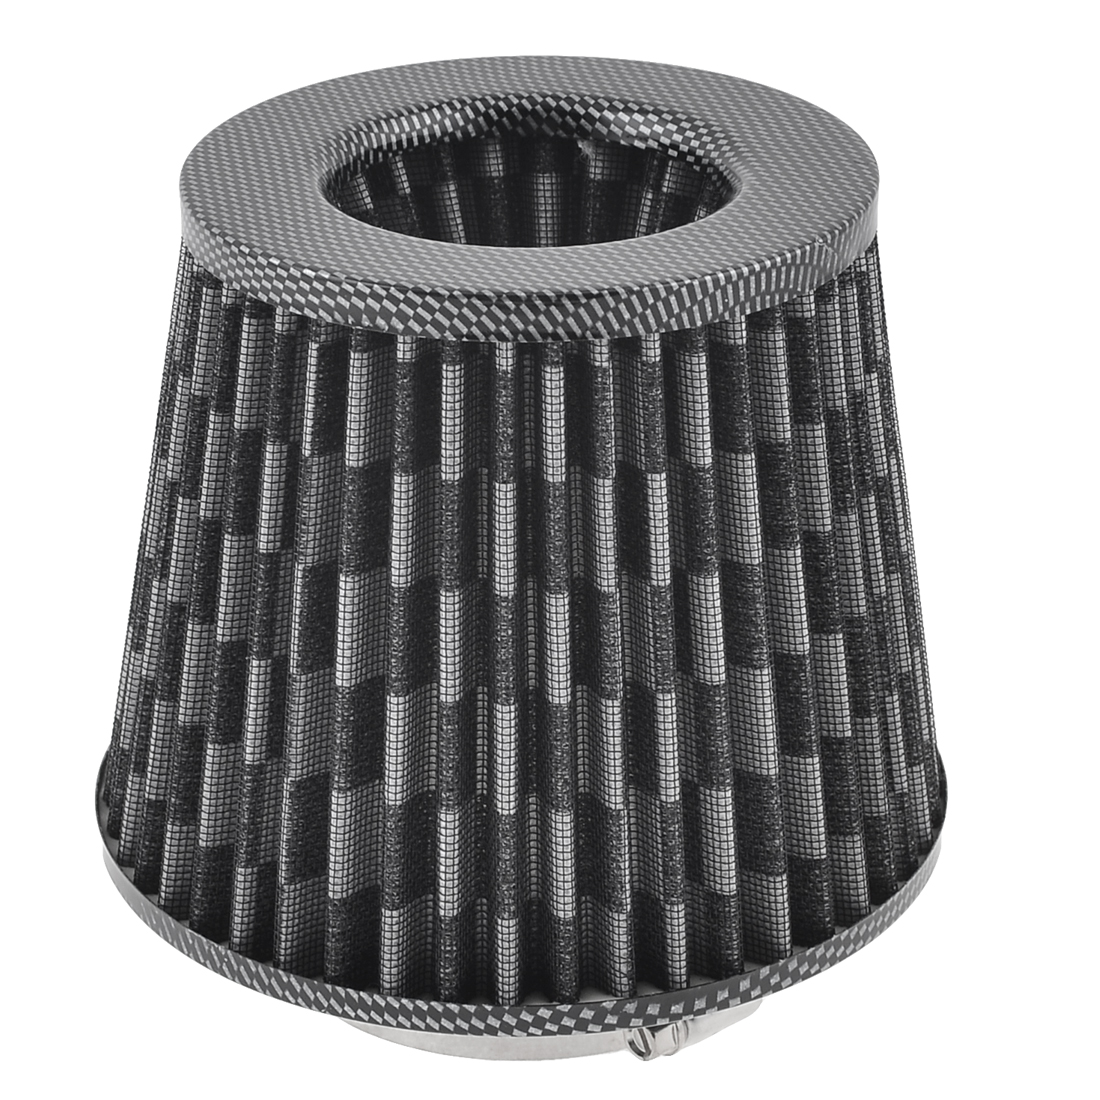 "Unique Bargains Vehicle Car Black White 76mm 3"" Inlet Dia Air Intake Round Filter - image 7 of 7"